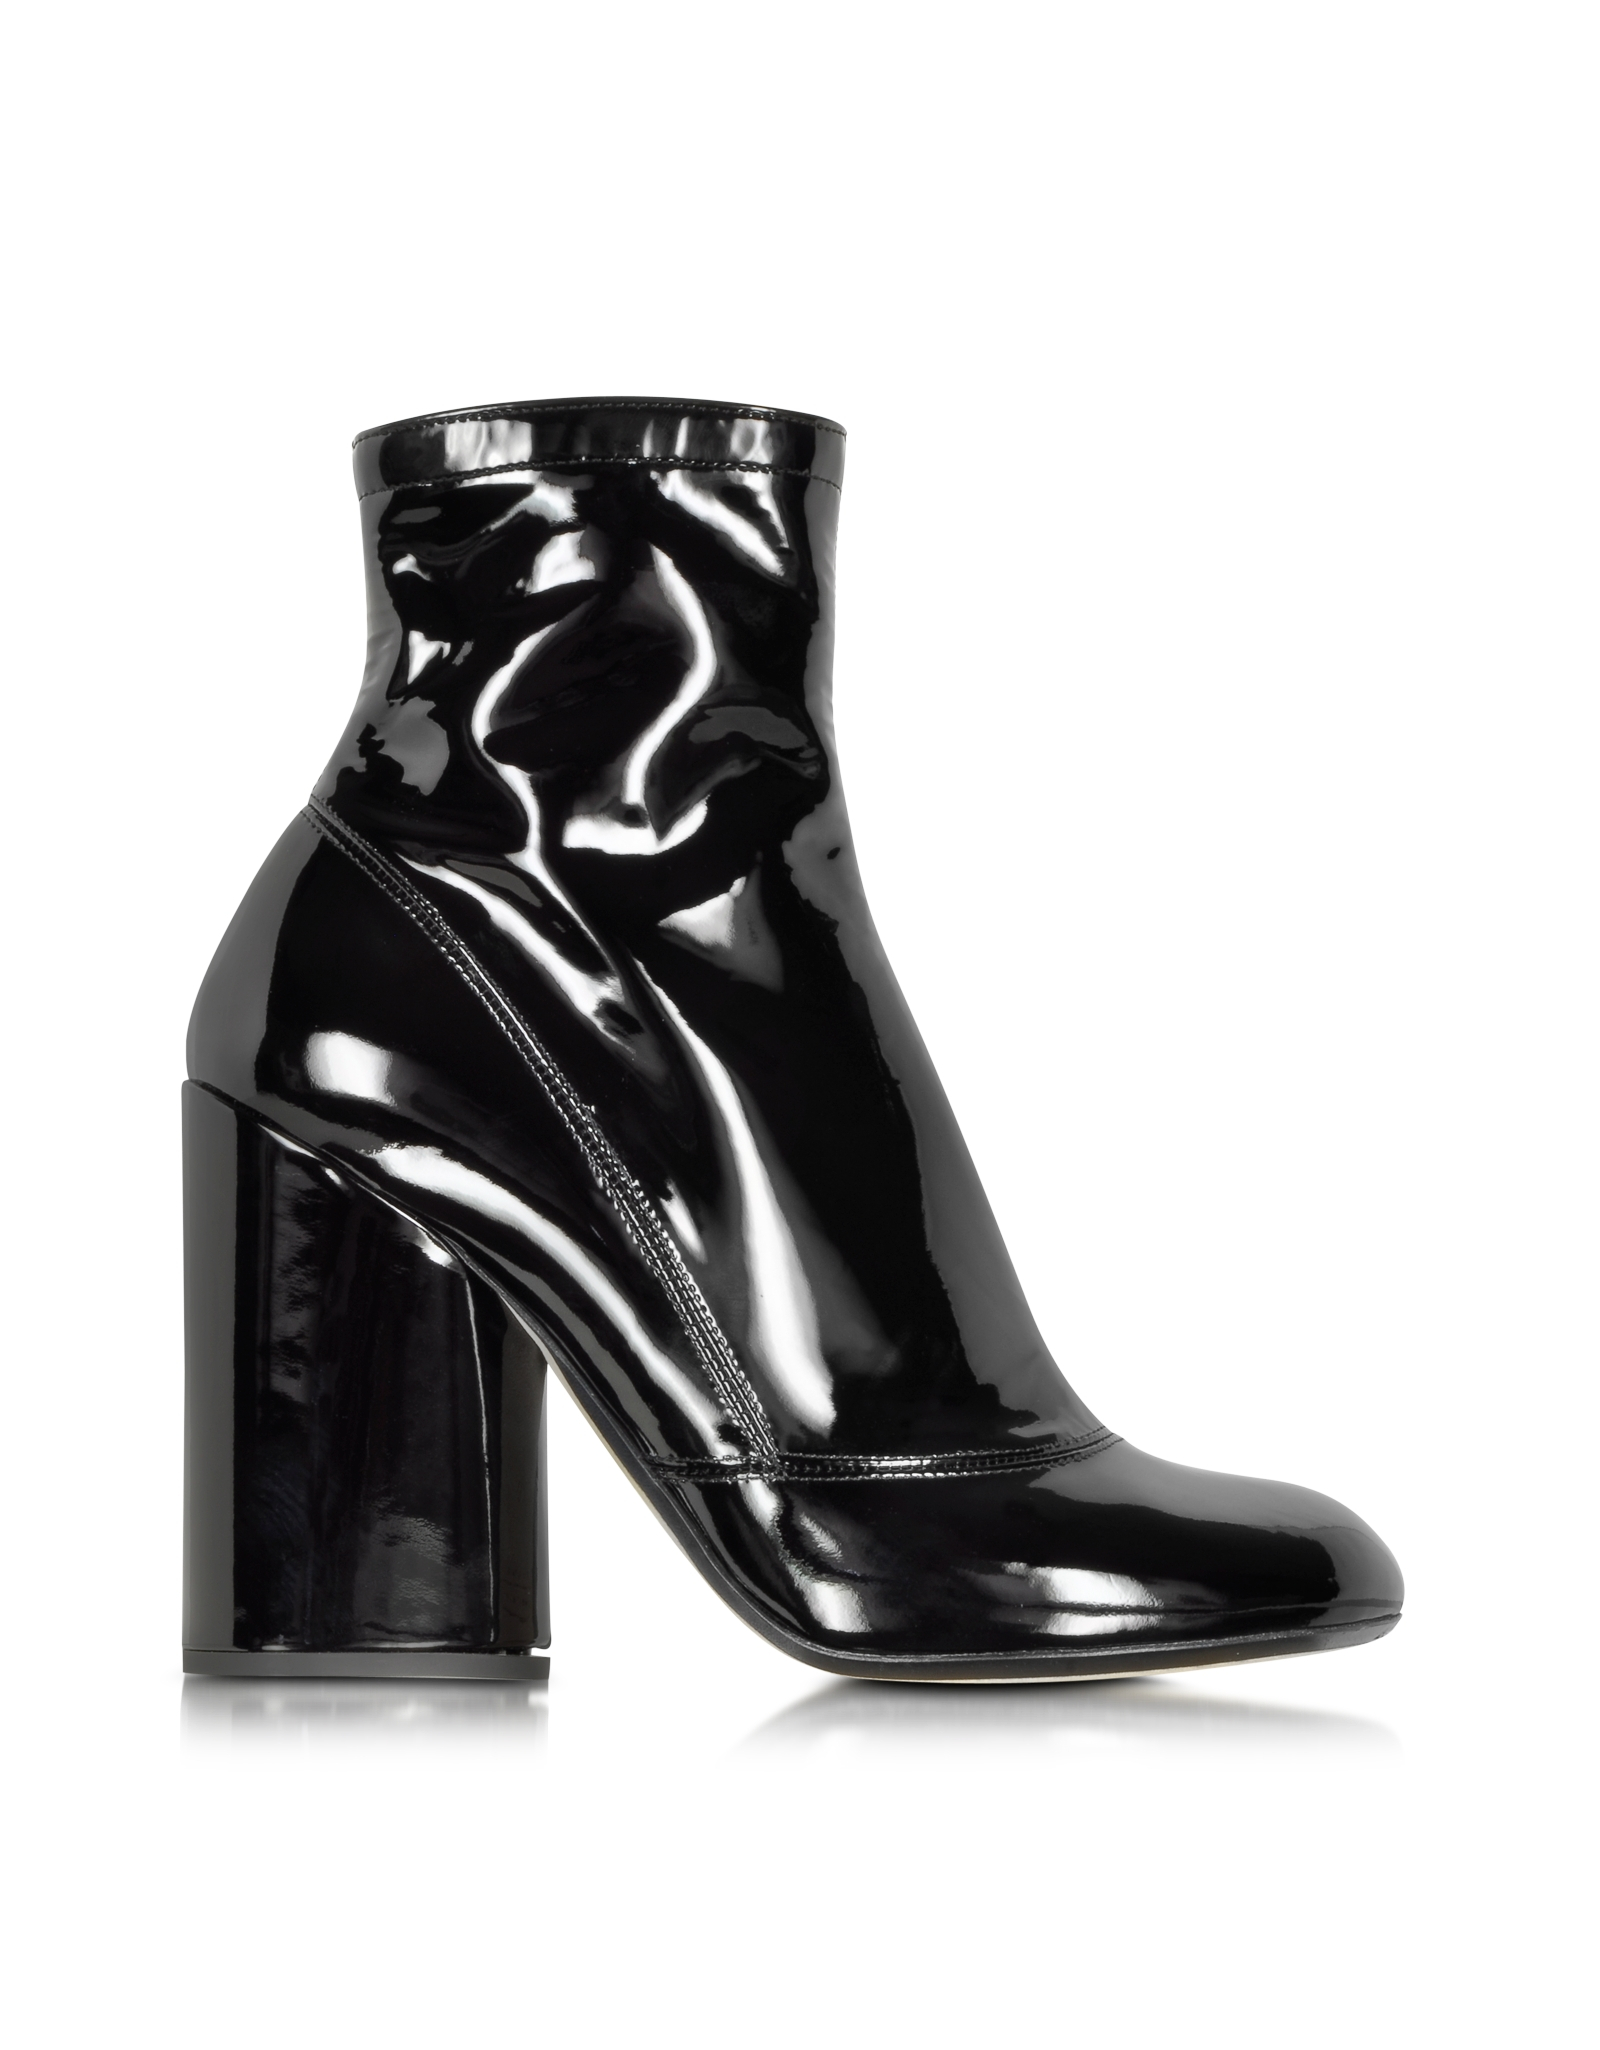 39e29cf97c3f Lyst - Marc Jacobs Black Patent Leather Boot in Black